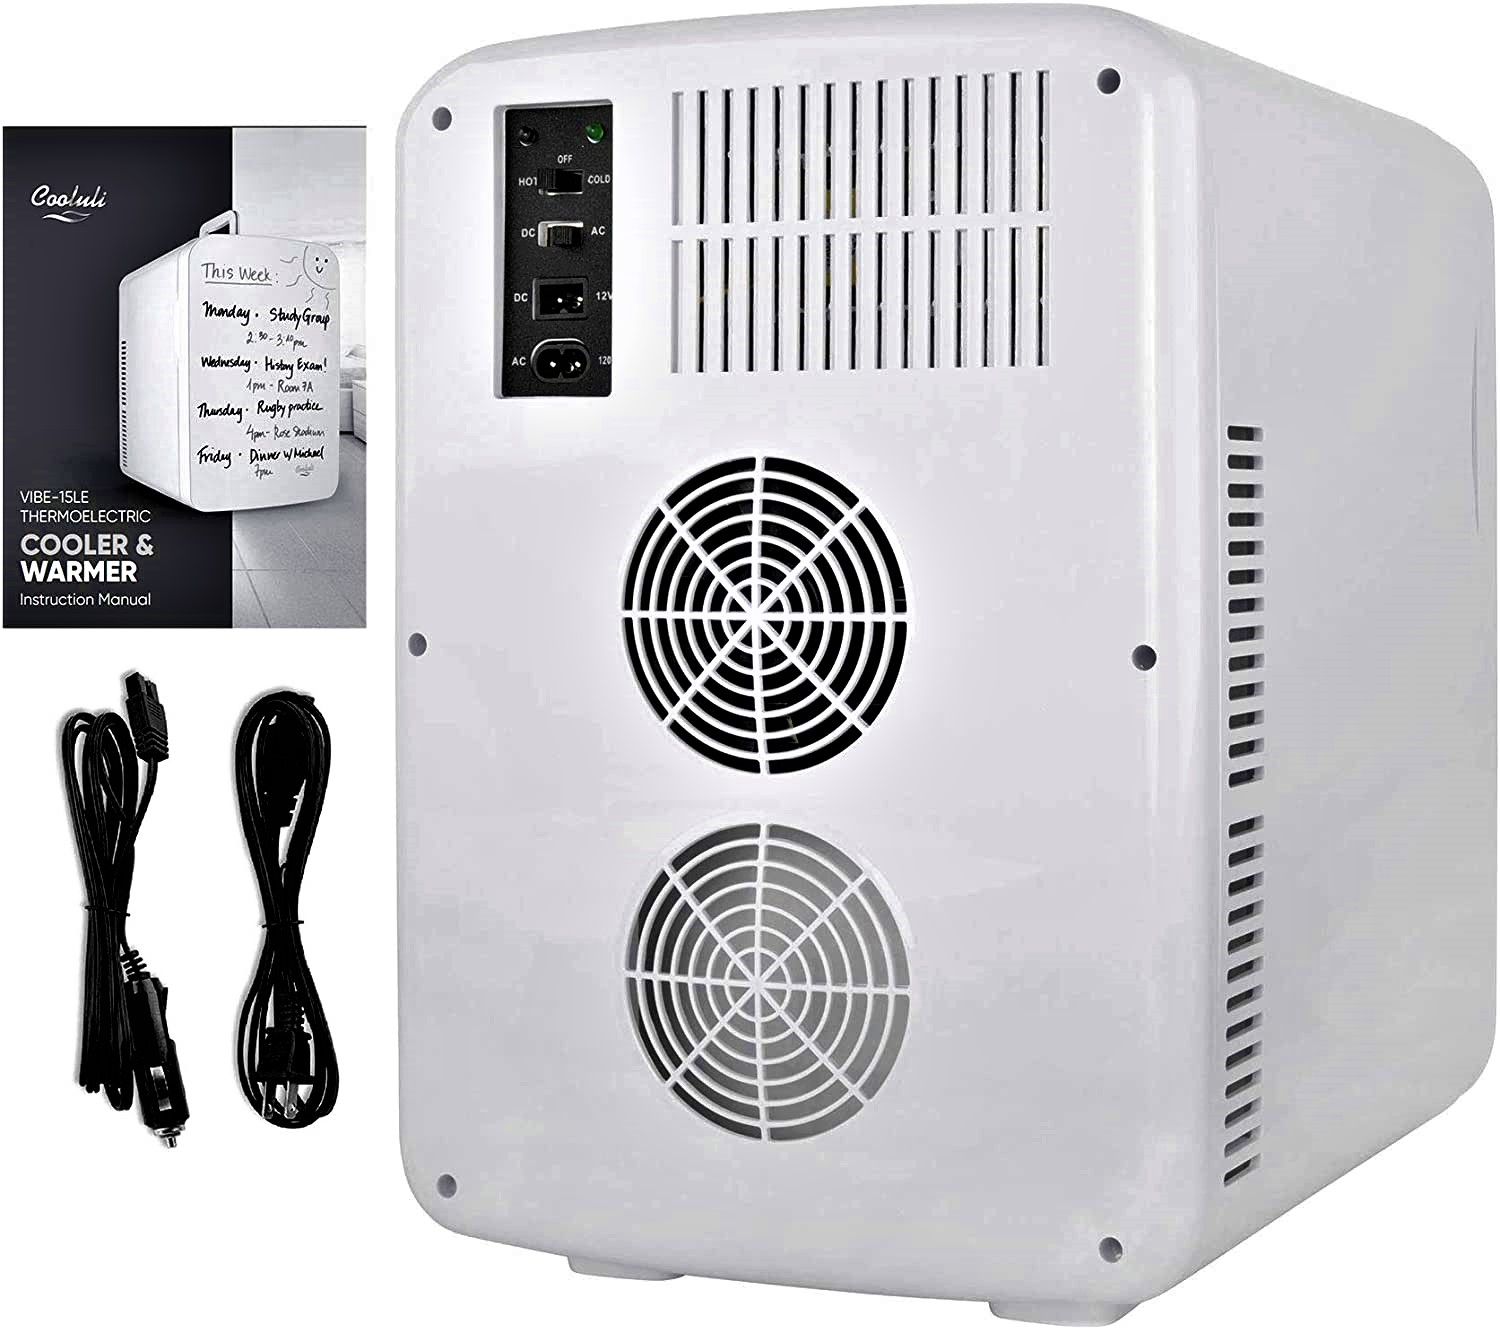 Cooluli Vibe White 15 Liter Compact Portable Cooler Warmer Specs